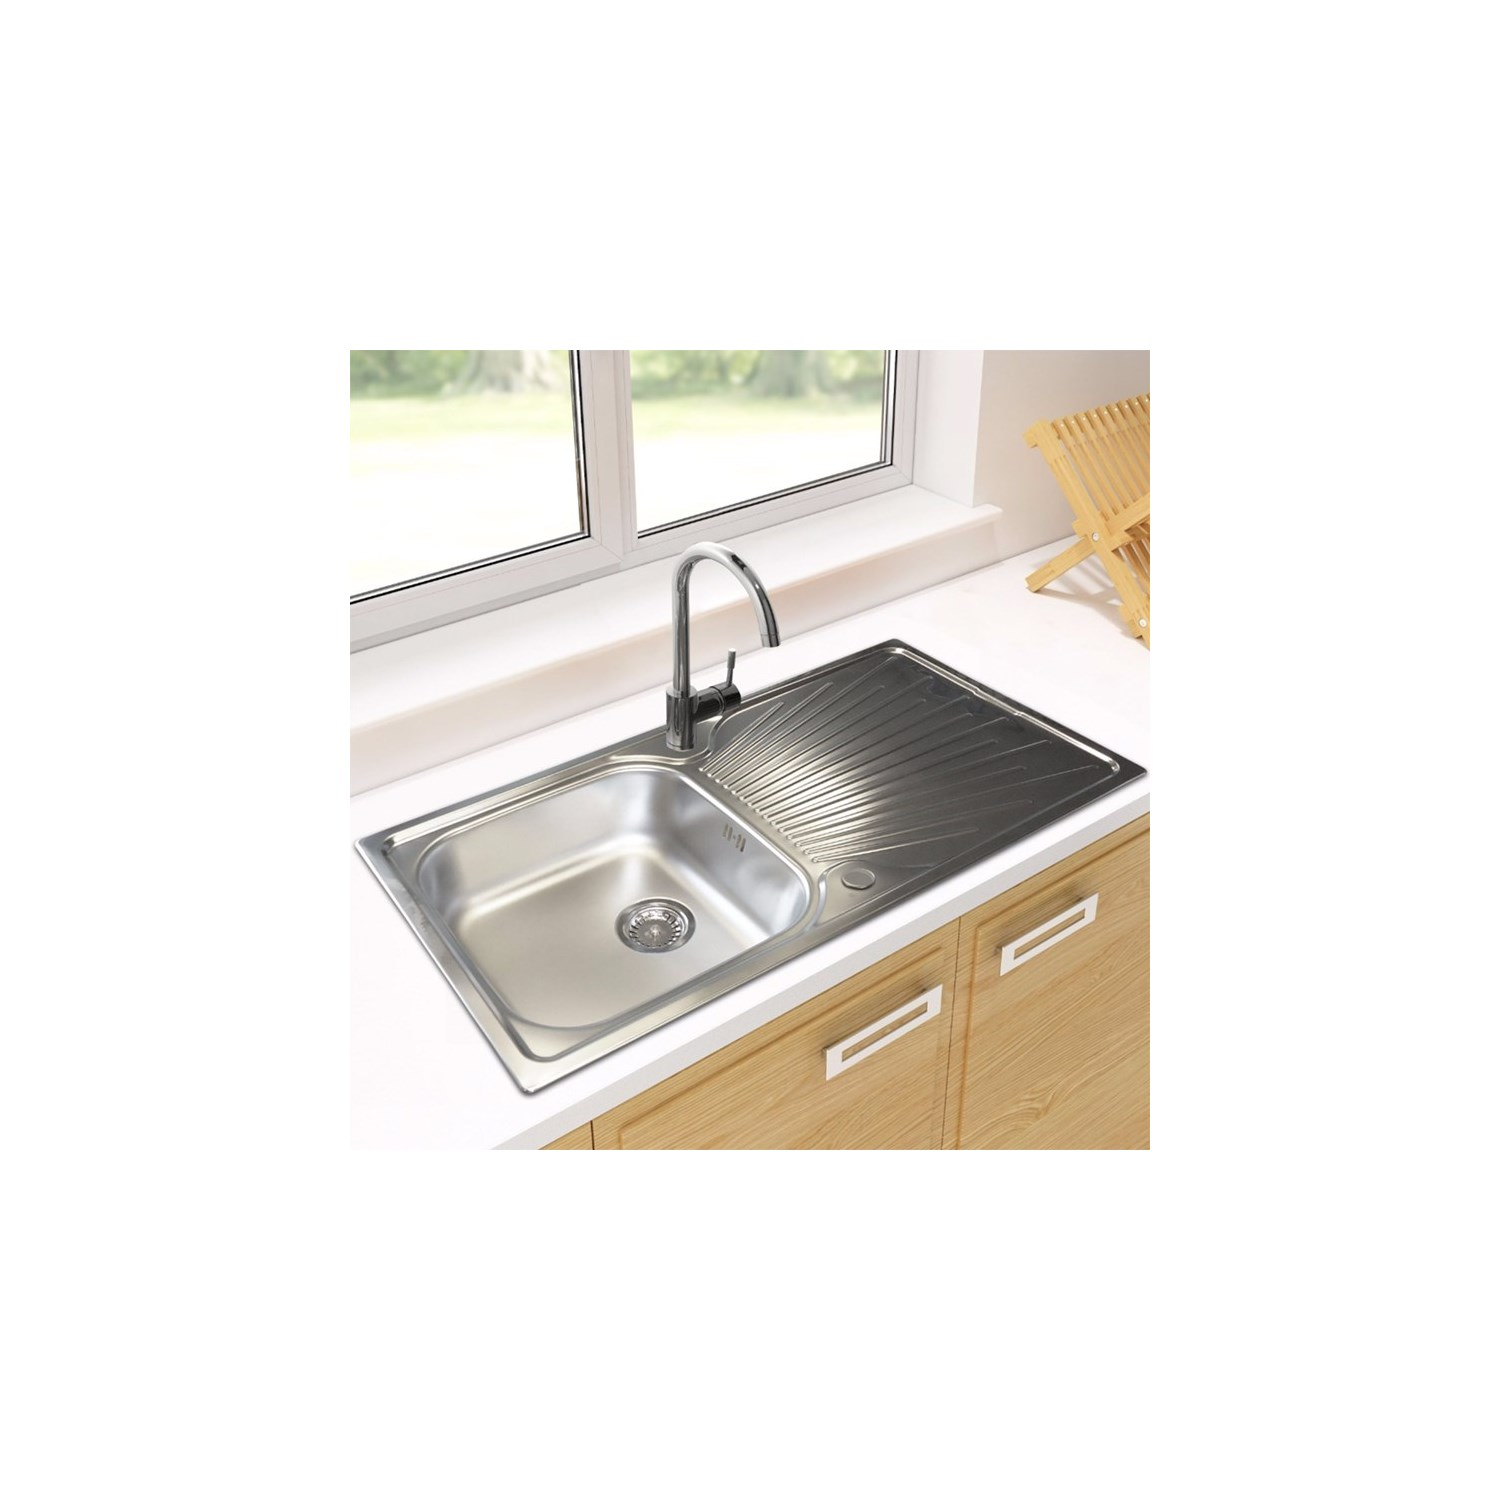 Astracast sunrise 1 bowl polished stainless steel sink with reversible drainer 965 x 500mm tap warehouse